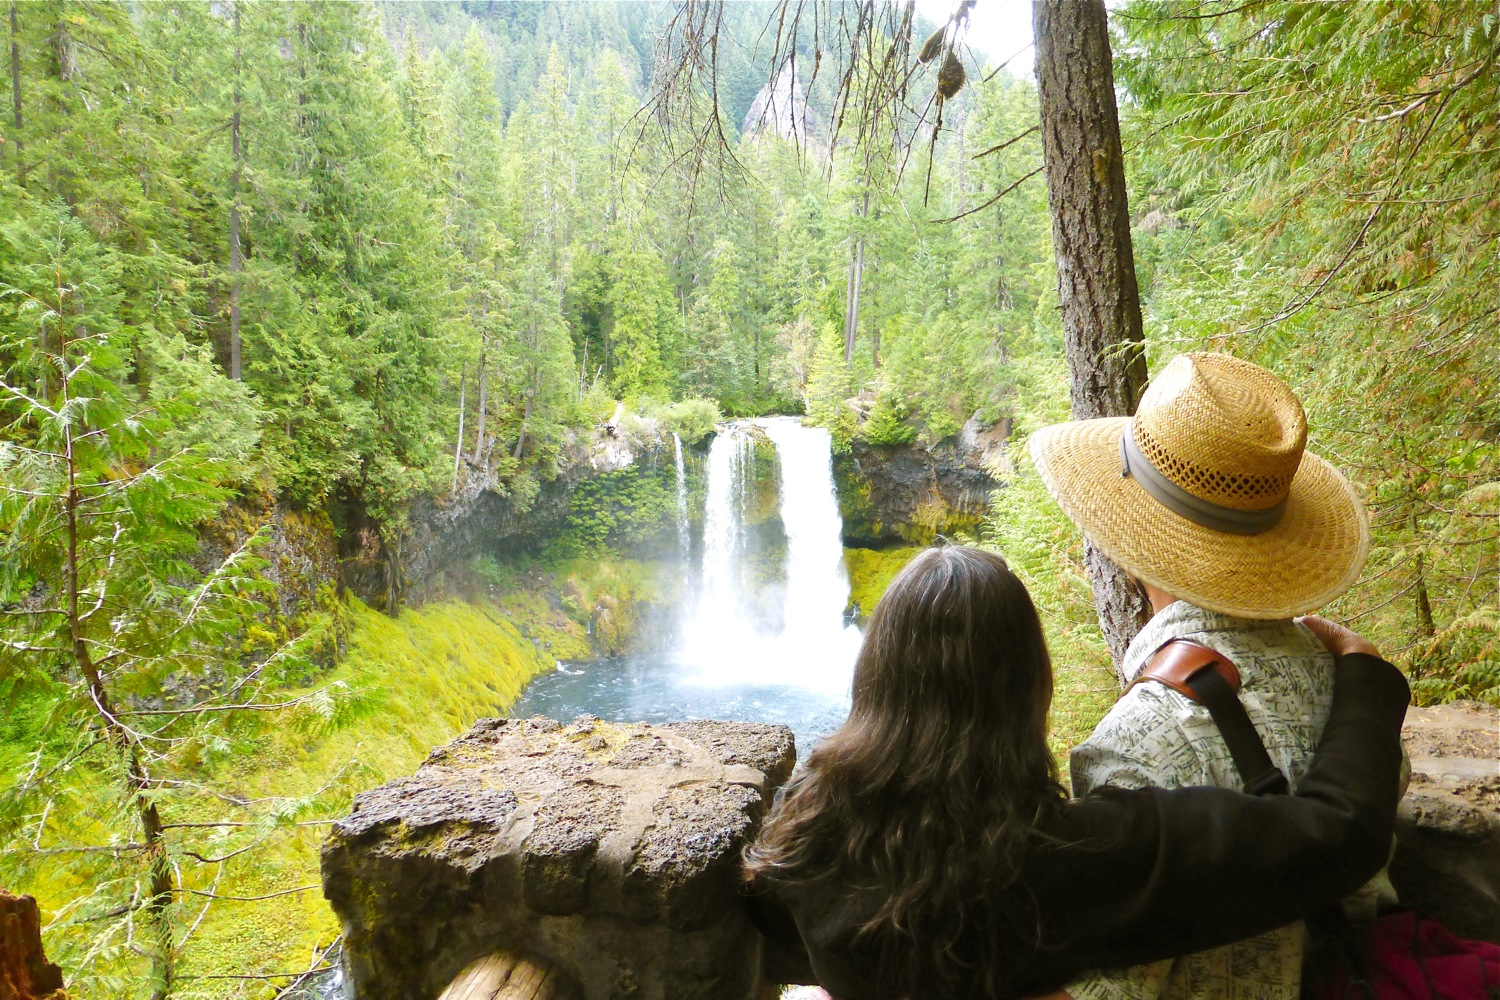 Sahalie Falls, Koosah Falls, Willamette National Forest, Cascade Range Forest Reserve, Oregon scenic river, McKenzie River, wild and scenic river, douglas fir, old growth forest, volcanic activity, andesite lava, President Grover Cleveland, John Muir, Mount Washington, scenic Oregon waterfalls, nature photography, June Anderson Under The Plum Blossom Tree, James Ayama Origami Night Lamp